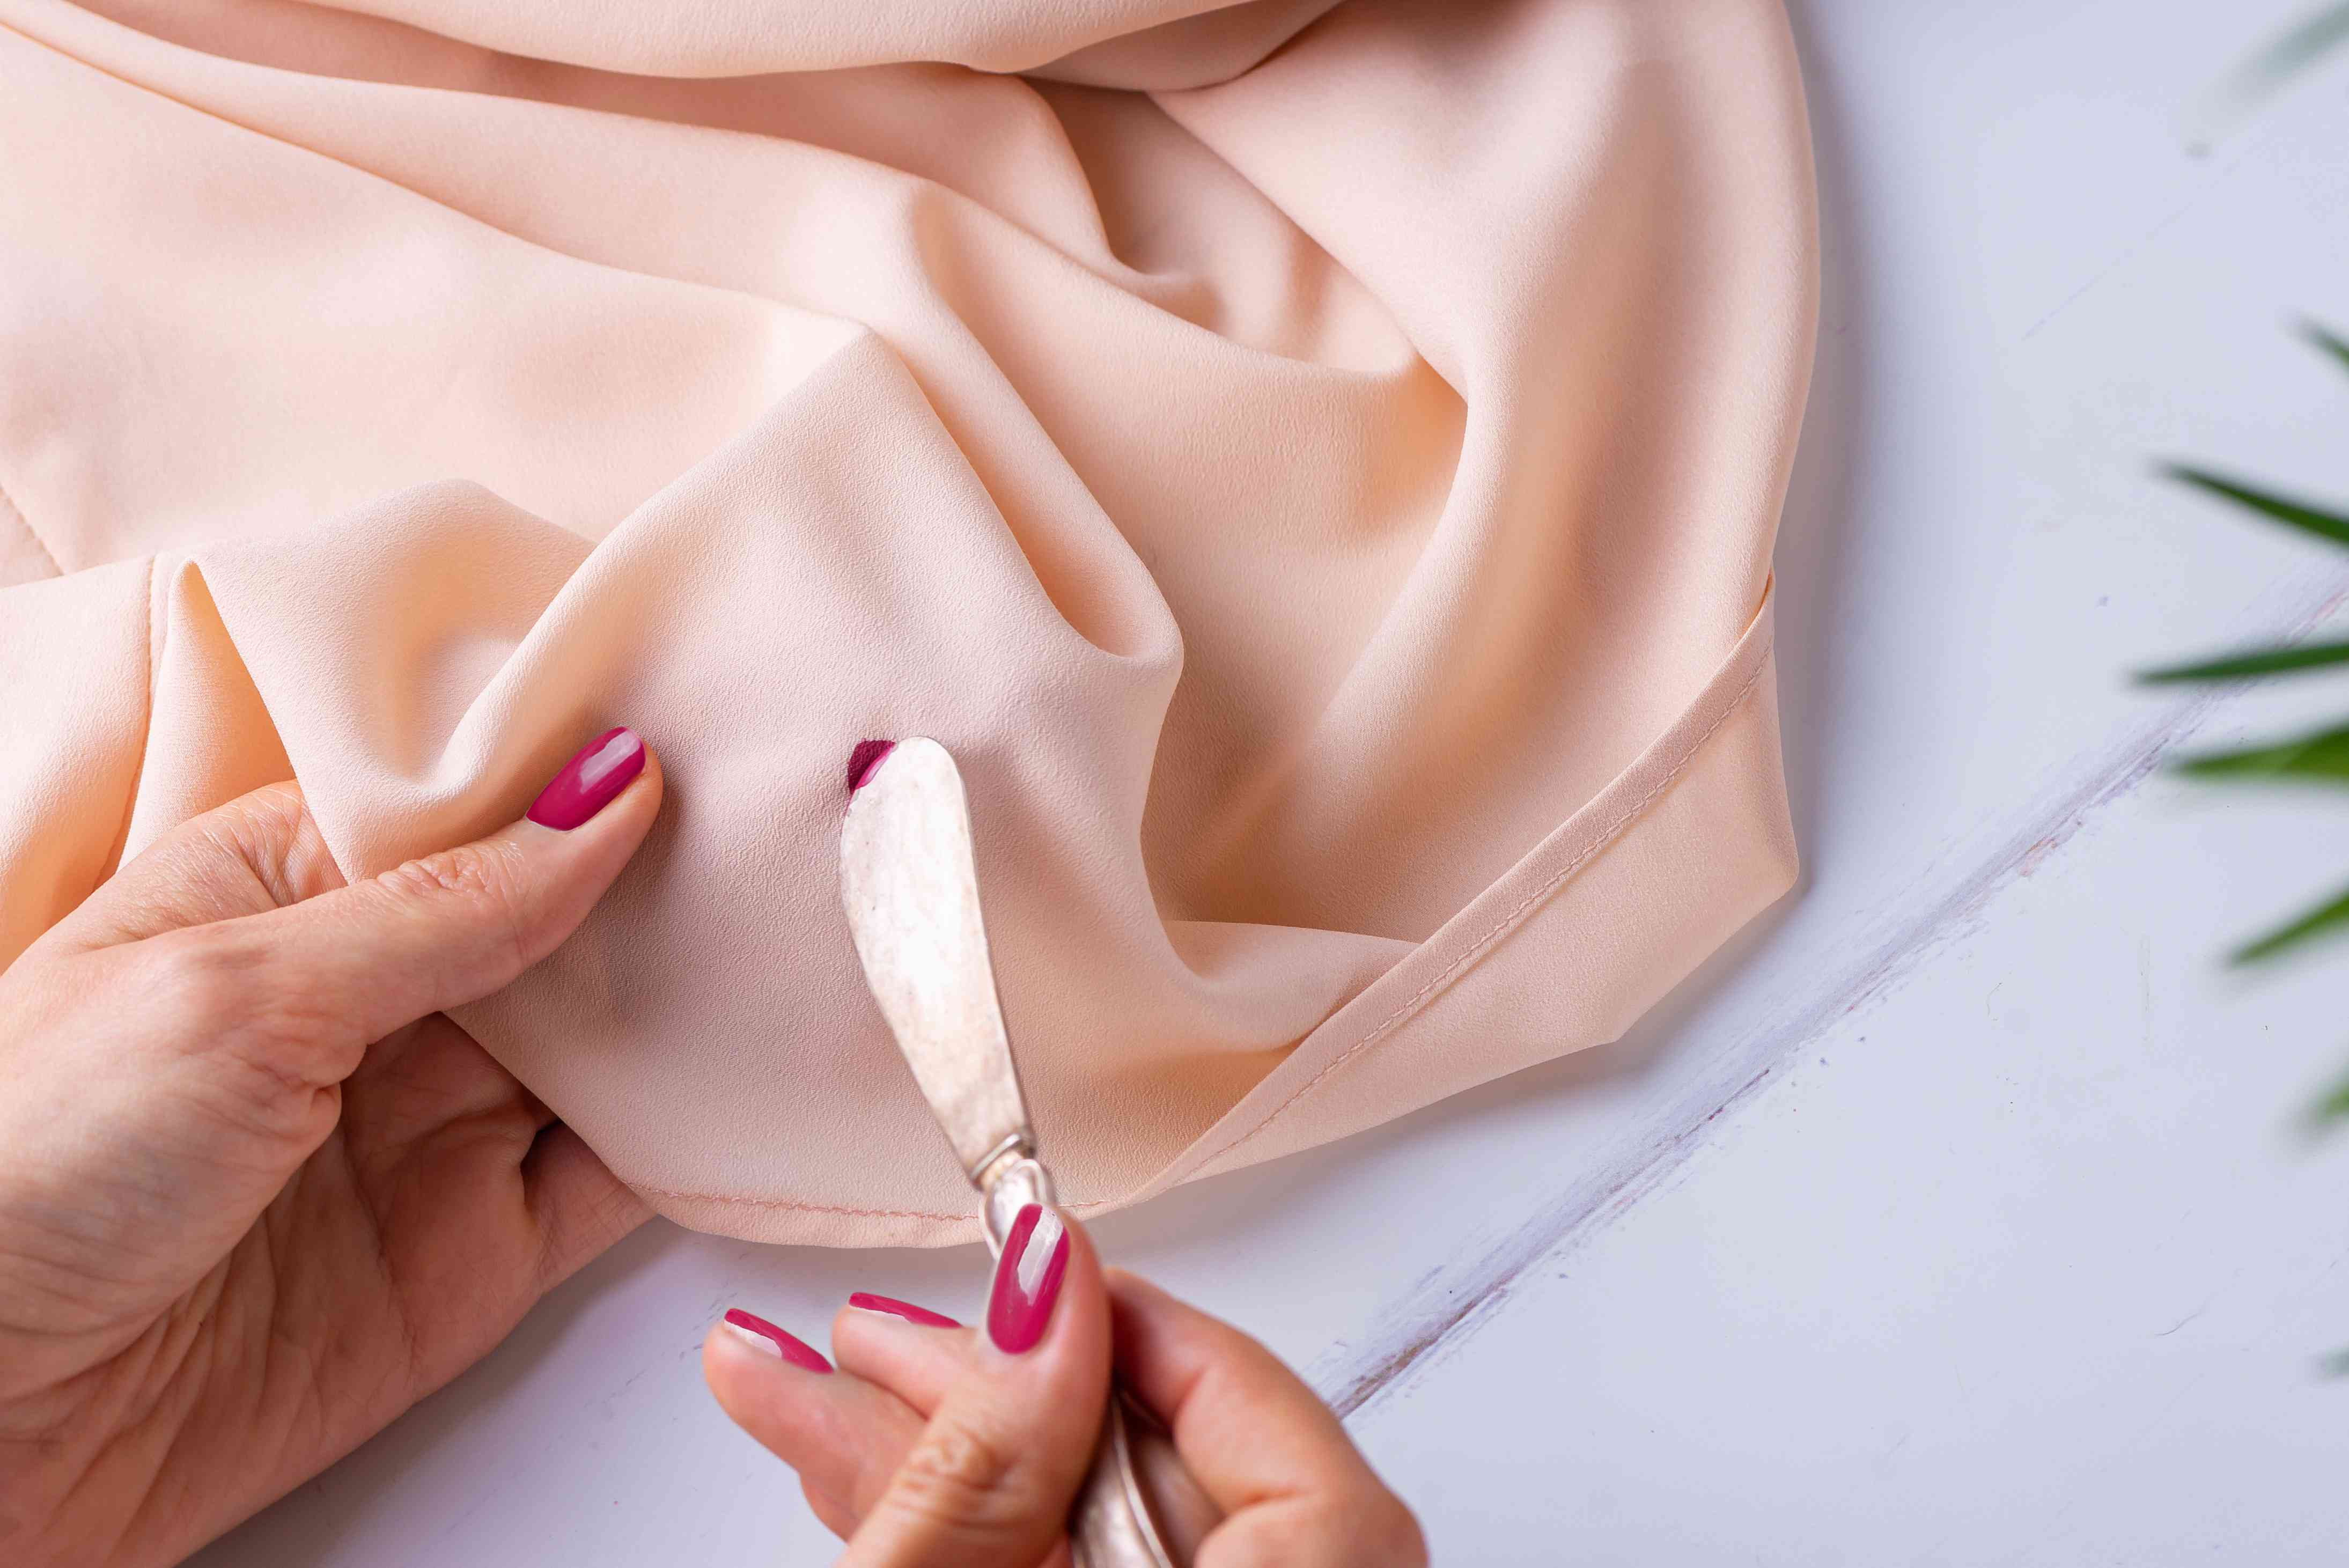 removing extra nail polish with a dull knife